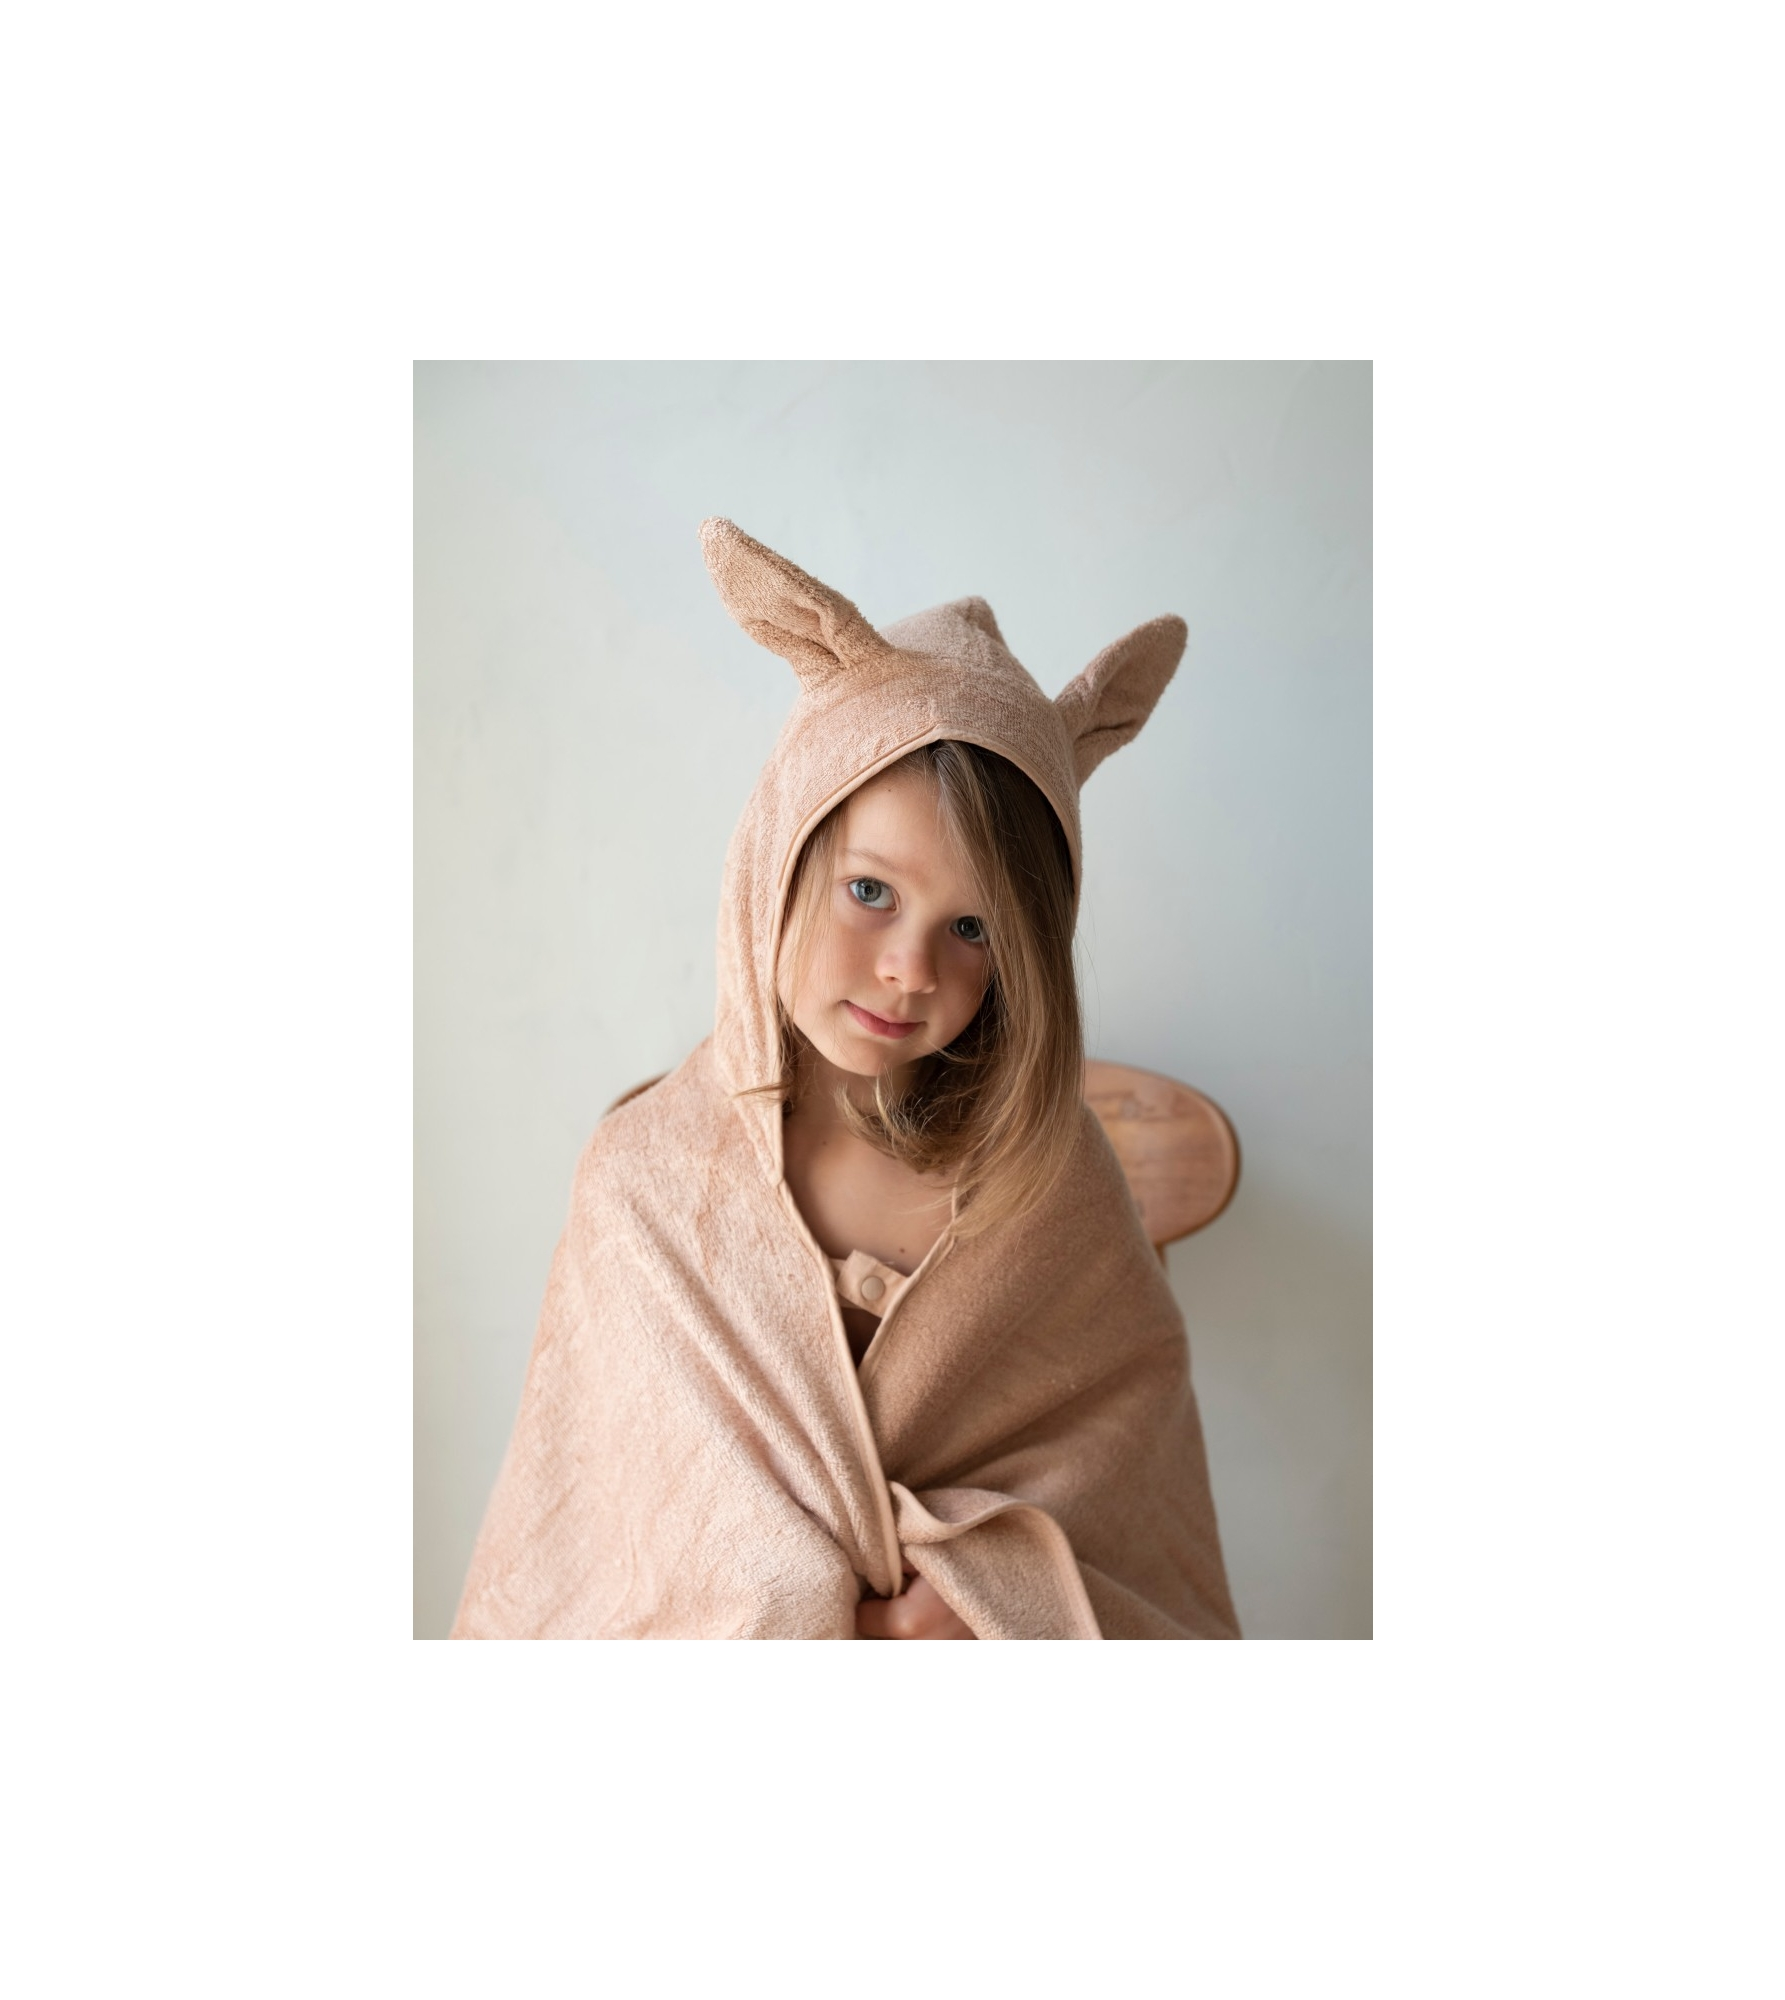 Hooded Junior Towel - Bunny - Old Rose 3_edit.jpg